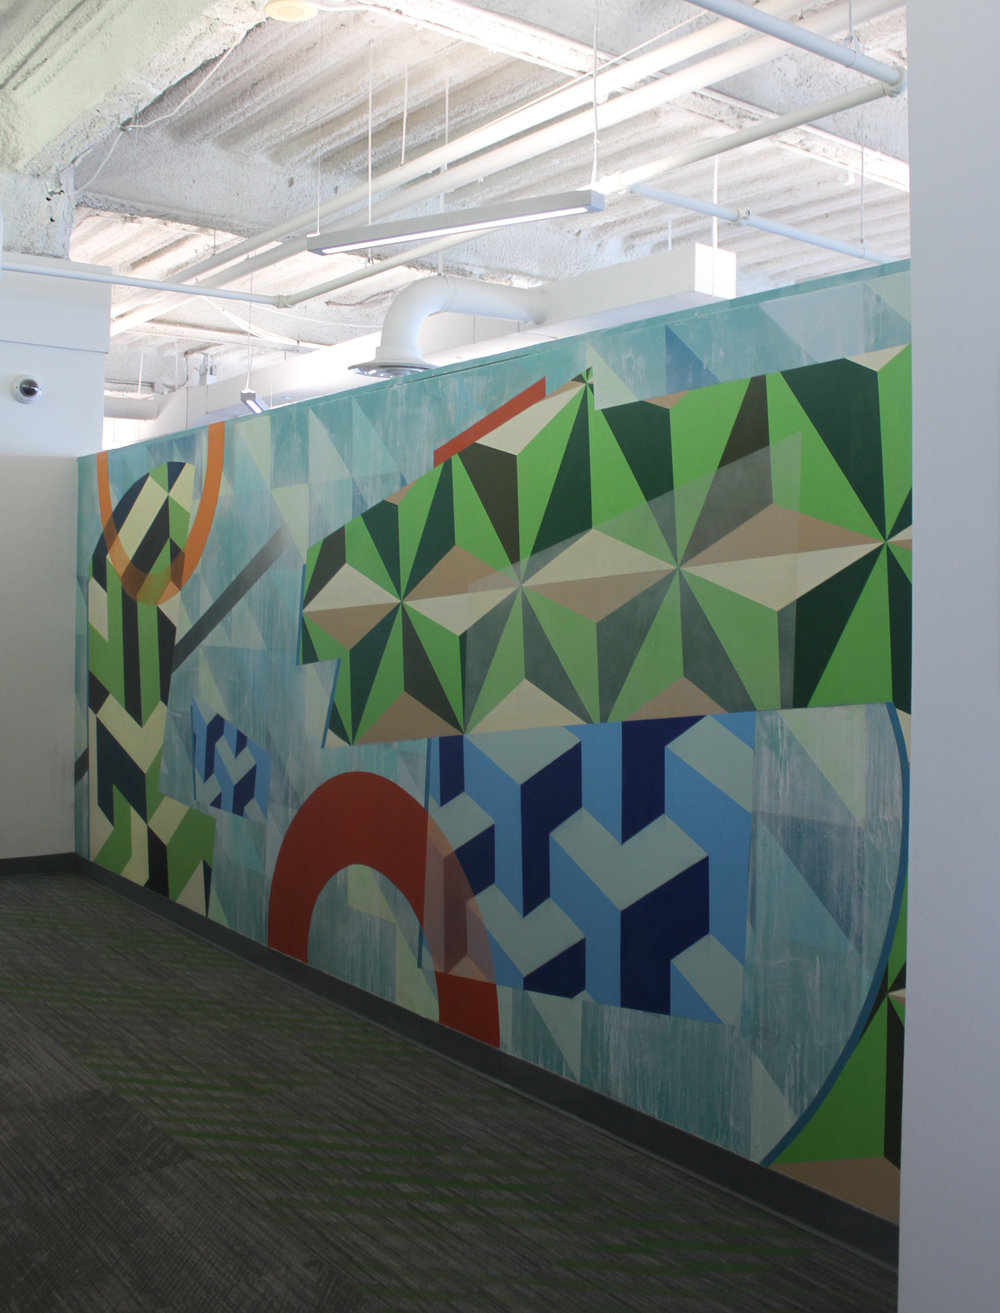 AMAZON.COM CORPORATE OFFICES MURAL No. 1, DETROIT - 2016